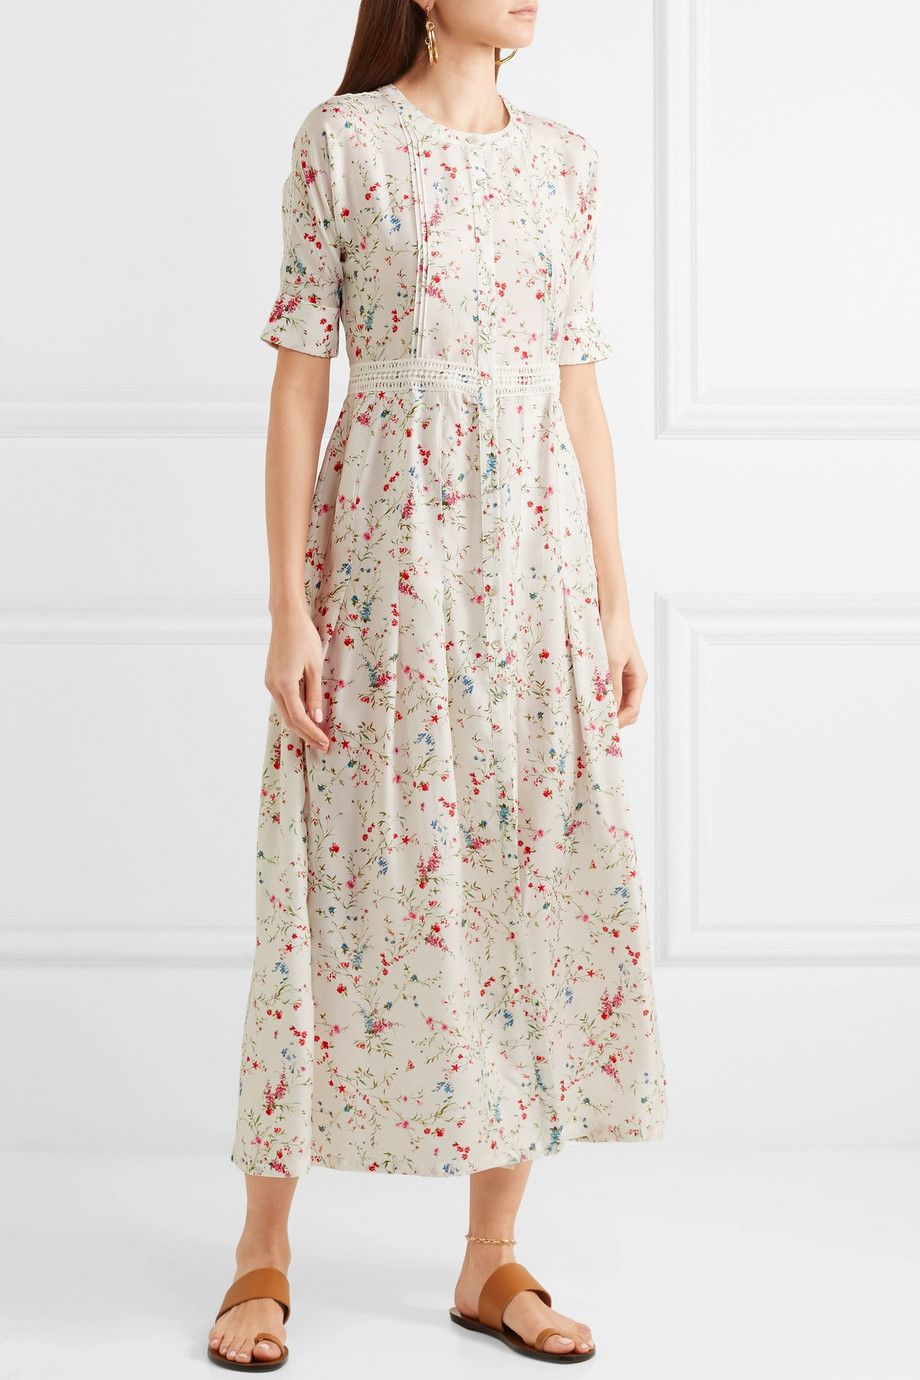 Luna Lace-trimmed Floral-print Silk Midi Dress - White Paloma Blue Outlet Store Footlocker Pictures Sale Online Buy Cheap Footlocker Pictures feGnAYOZzp